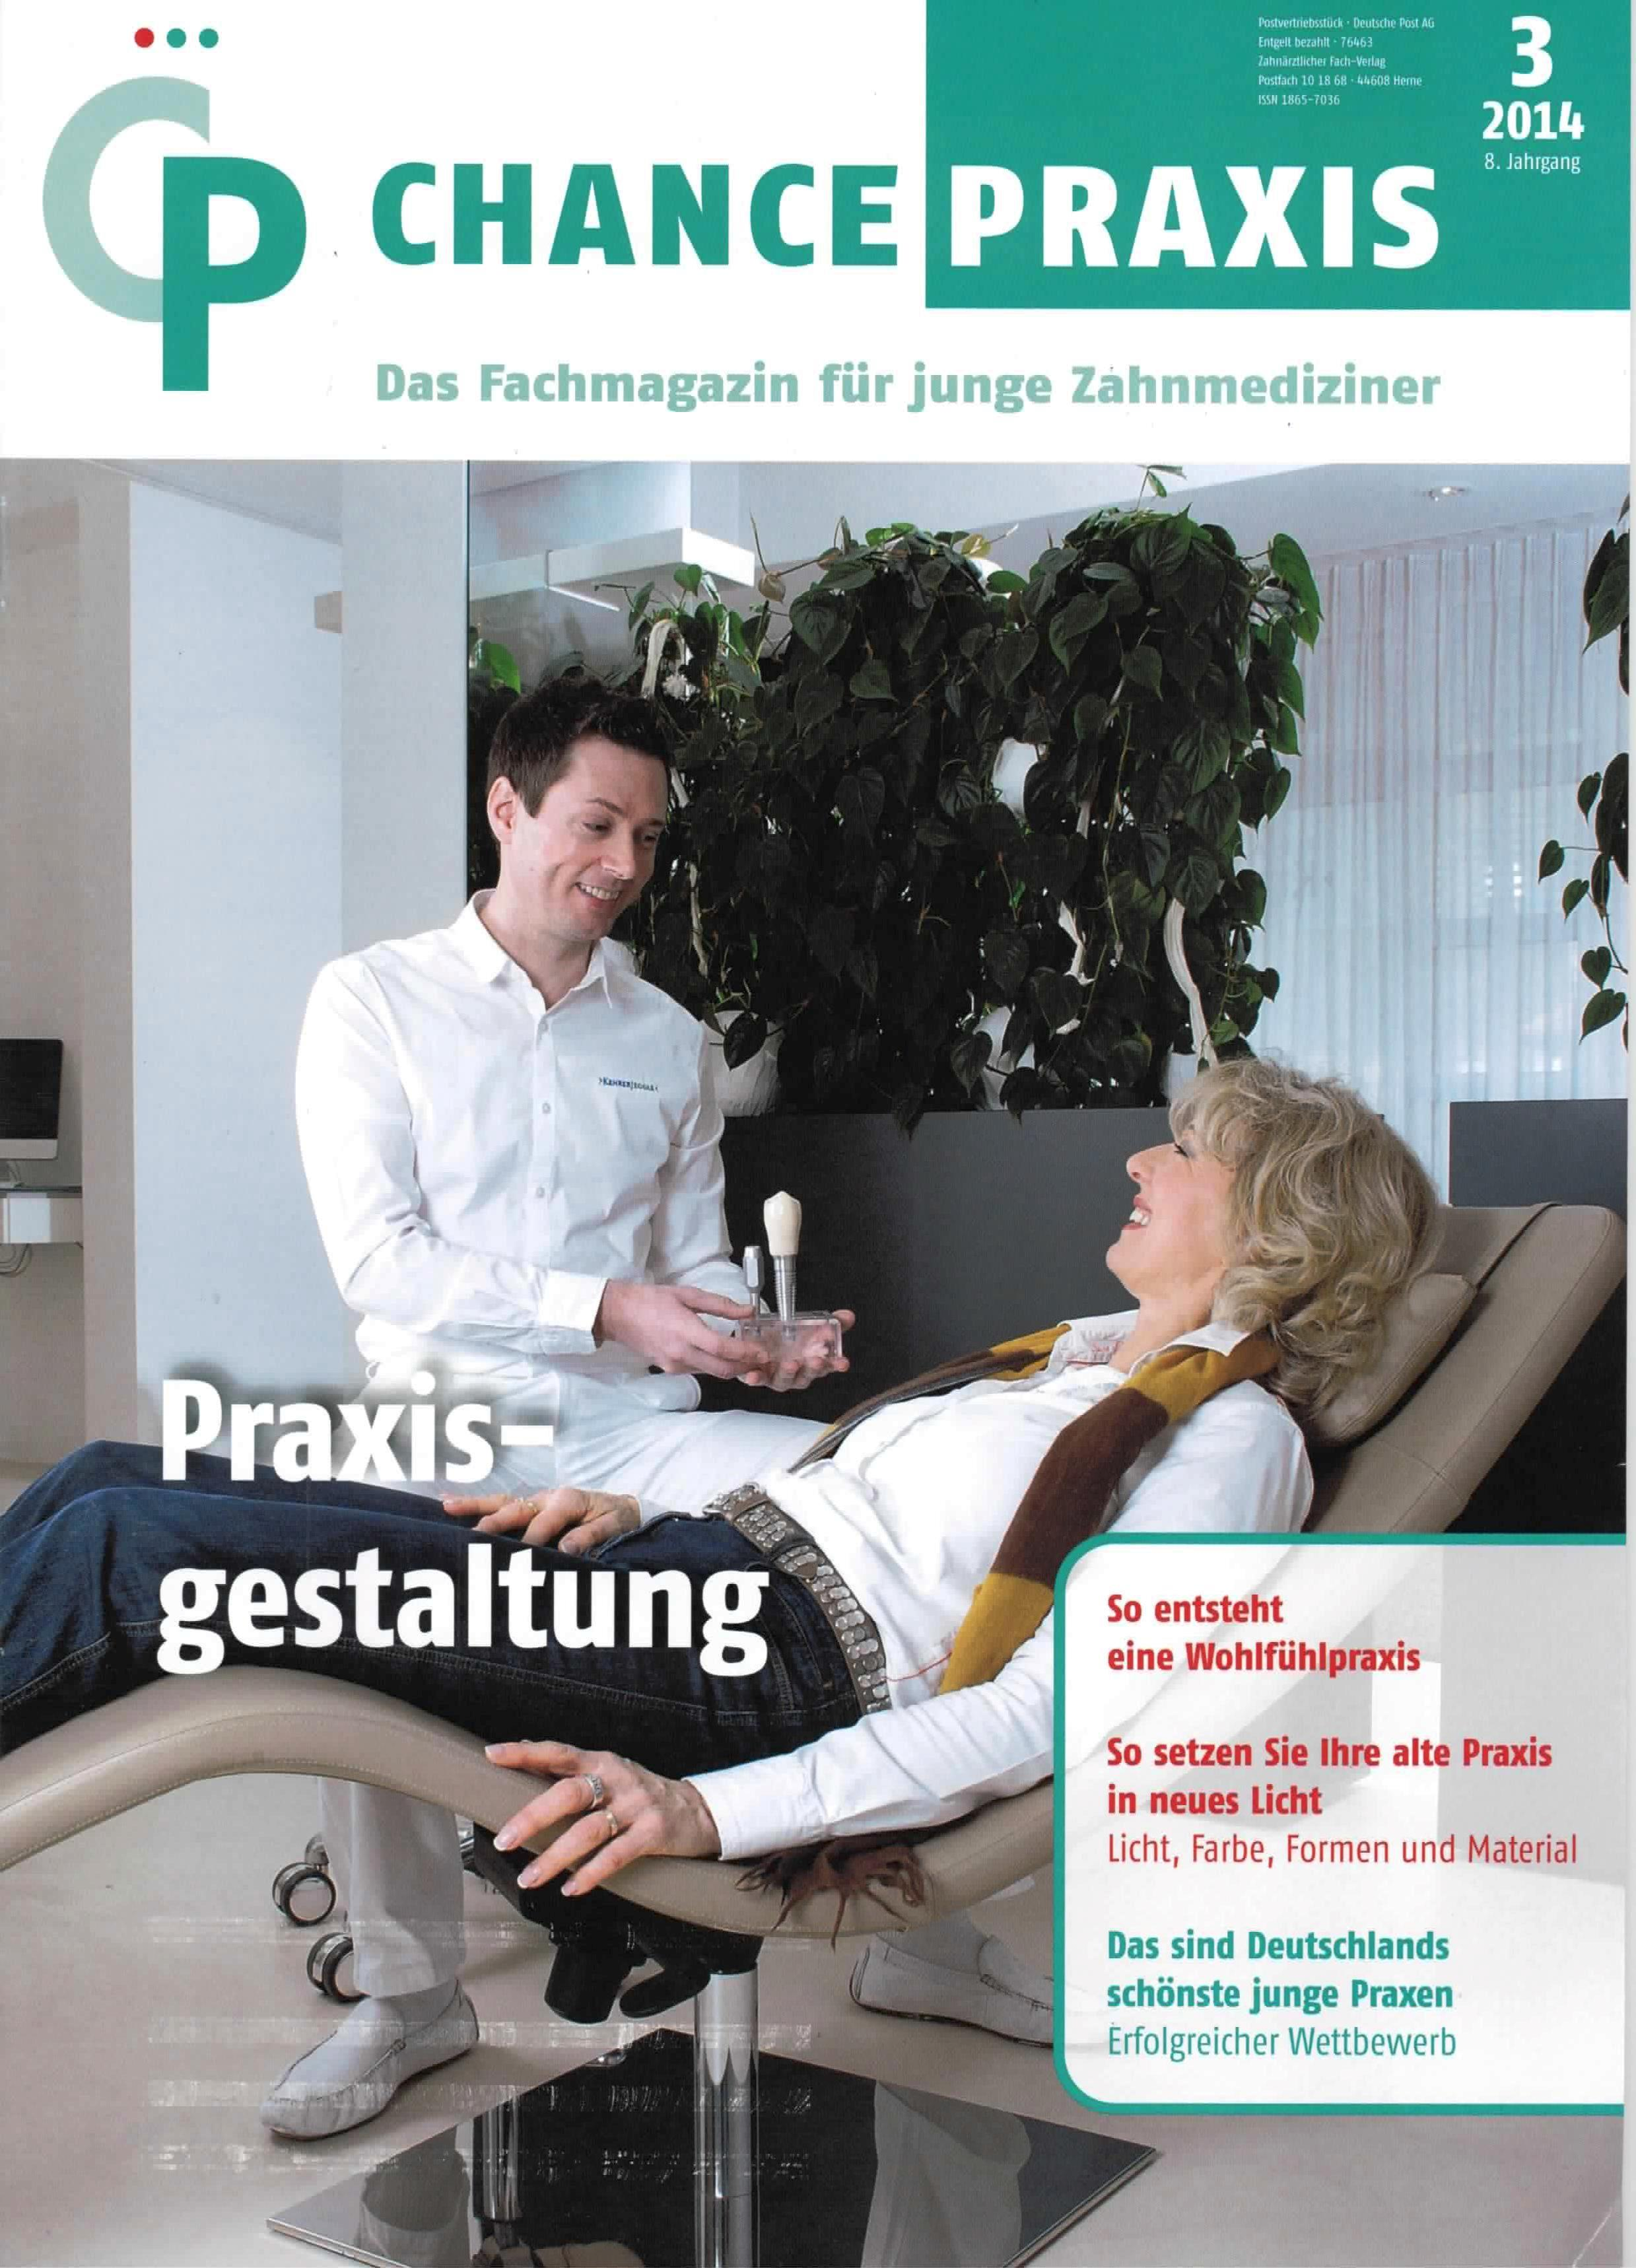 The most beautiful young dentist clinic in Germany: Chance Praxis - Article Page 1